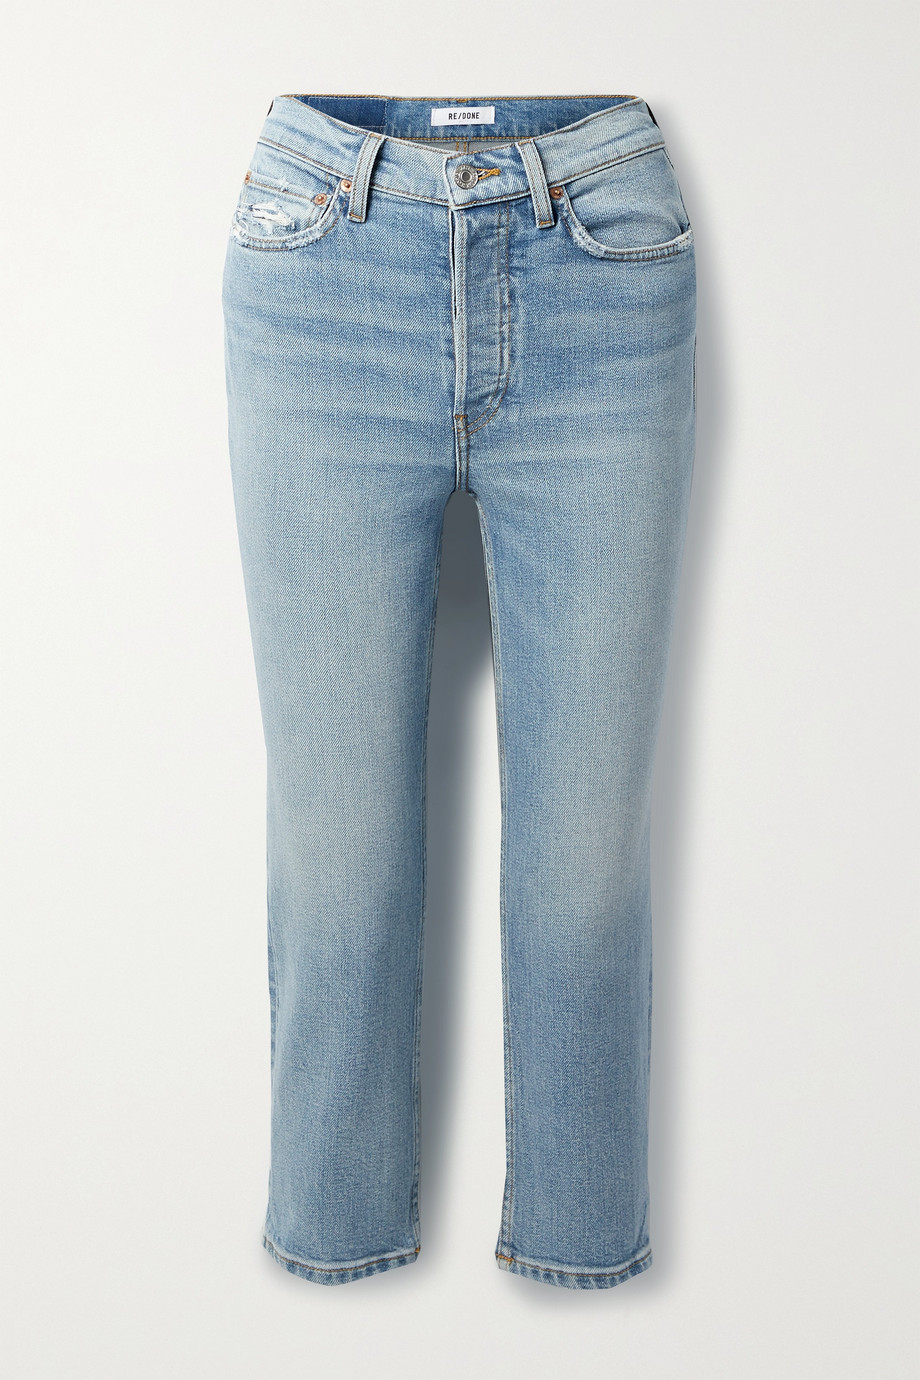 RE/DONE Comfort Stretch High-Rise Extra Crop Skinny Jeans